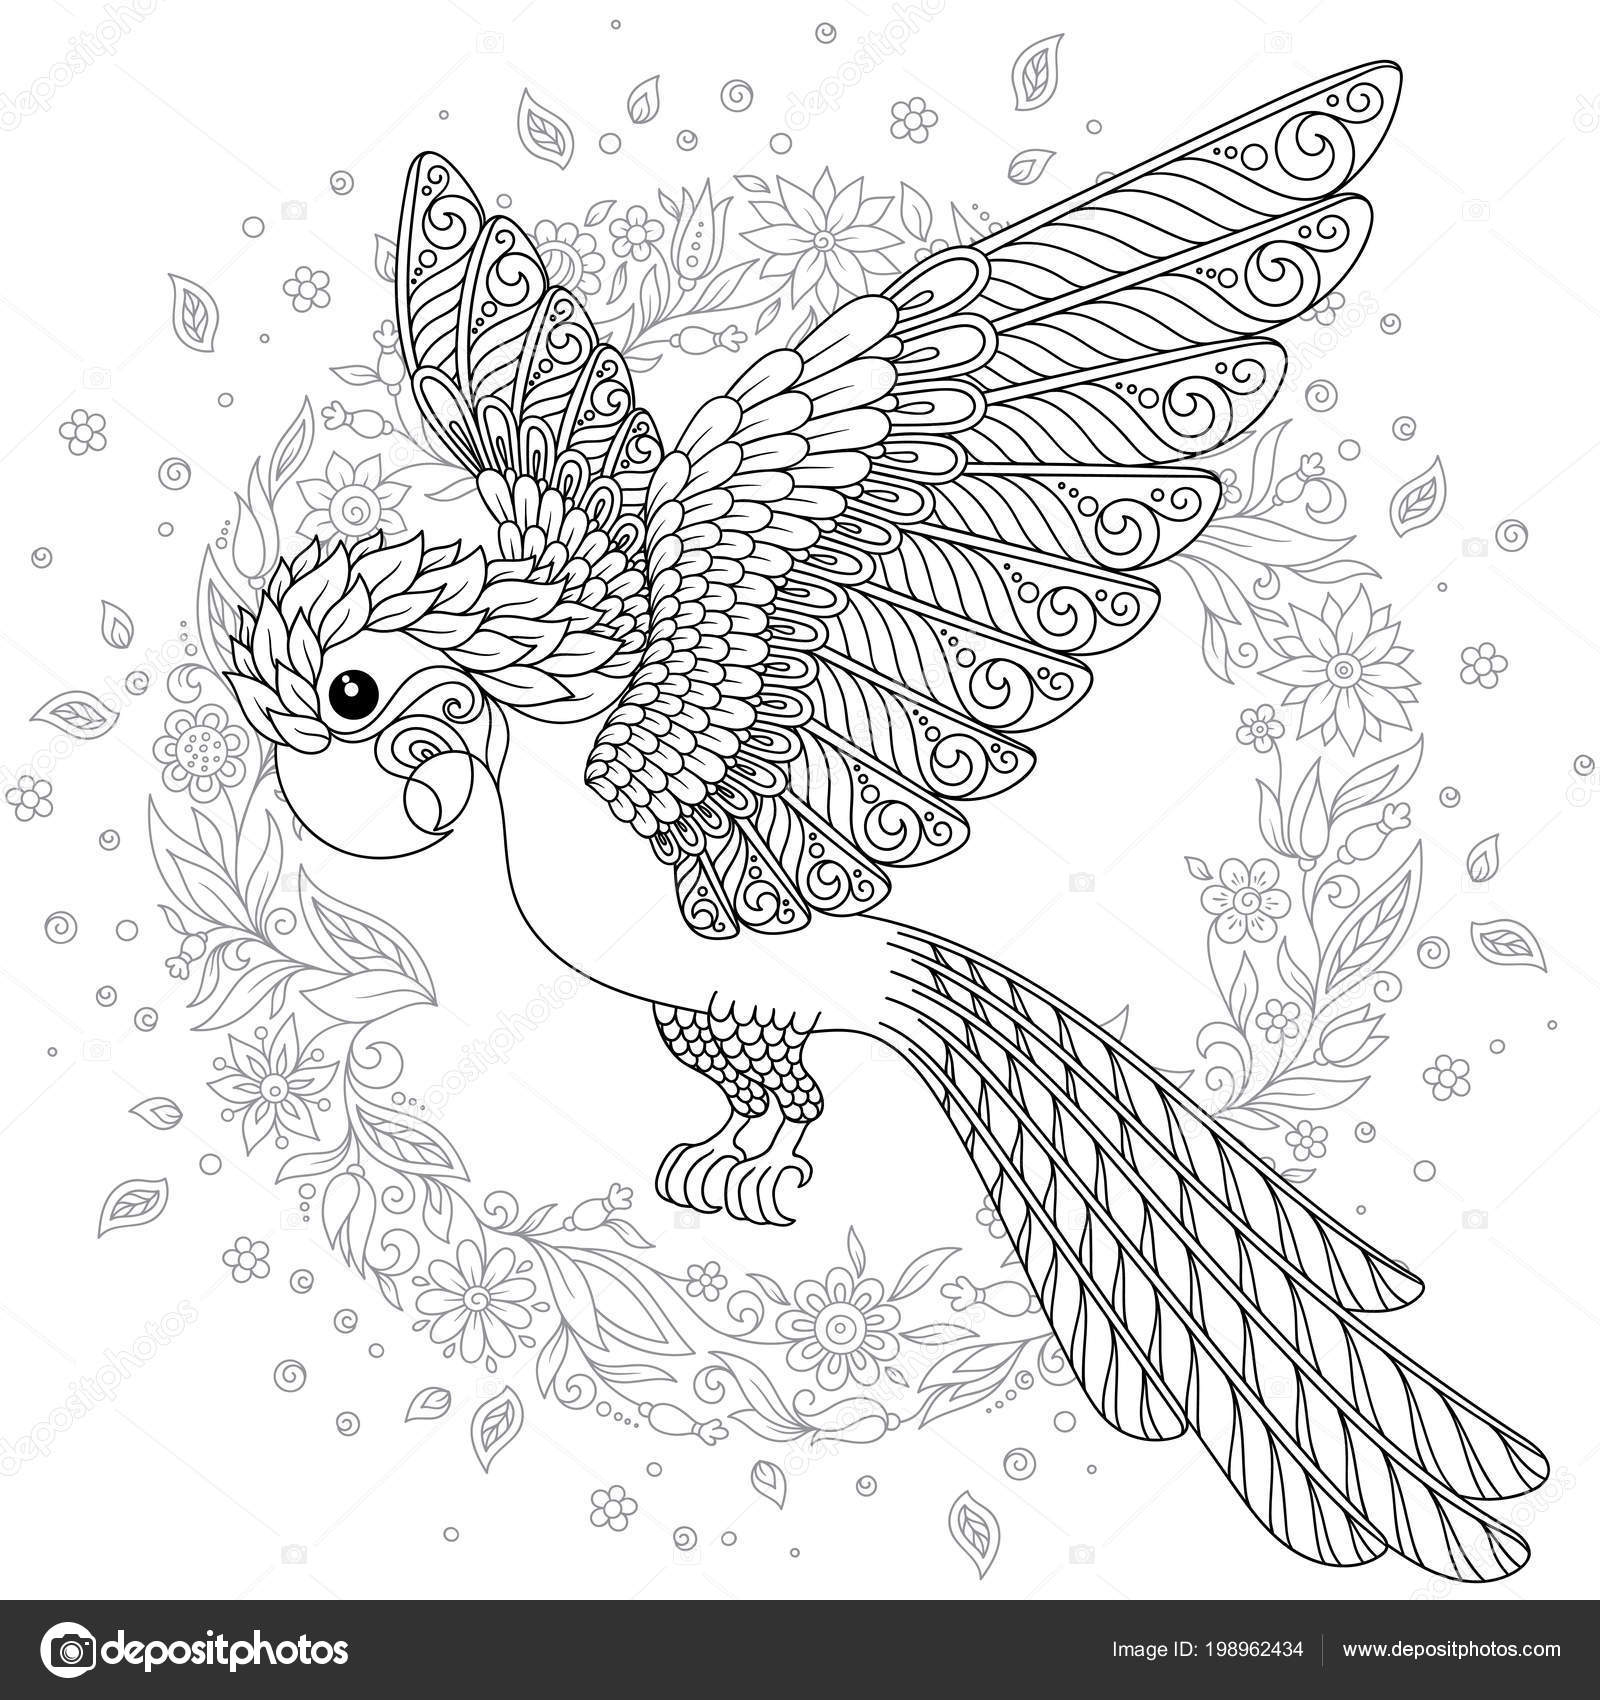 Zentangle Stylized Cartoon Budgie Parrot Hand Drawn Sketch Adult